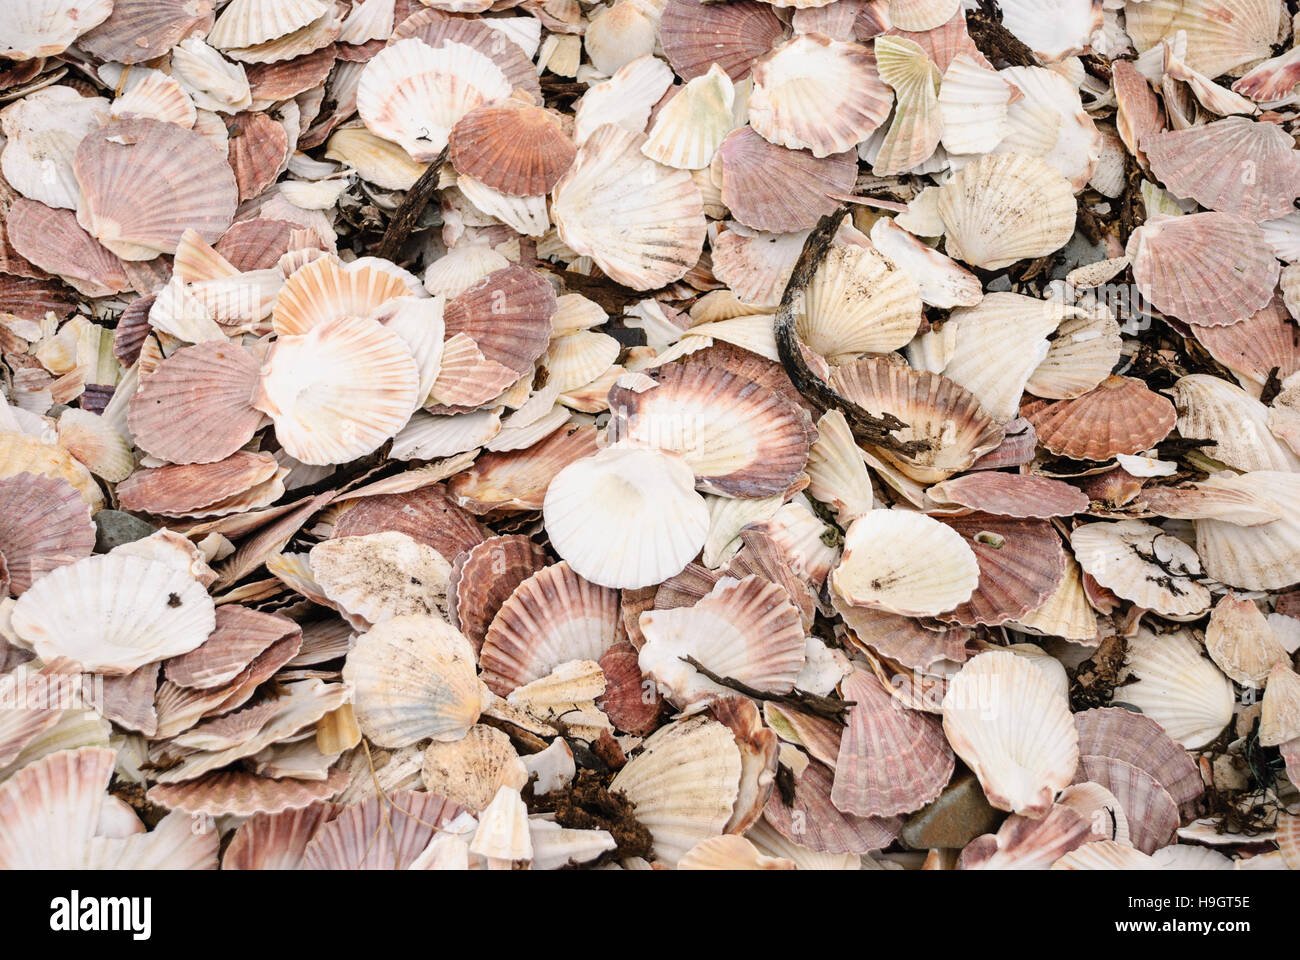 Large number of scallop shells on a beach. - Stock Image